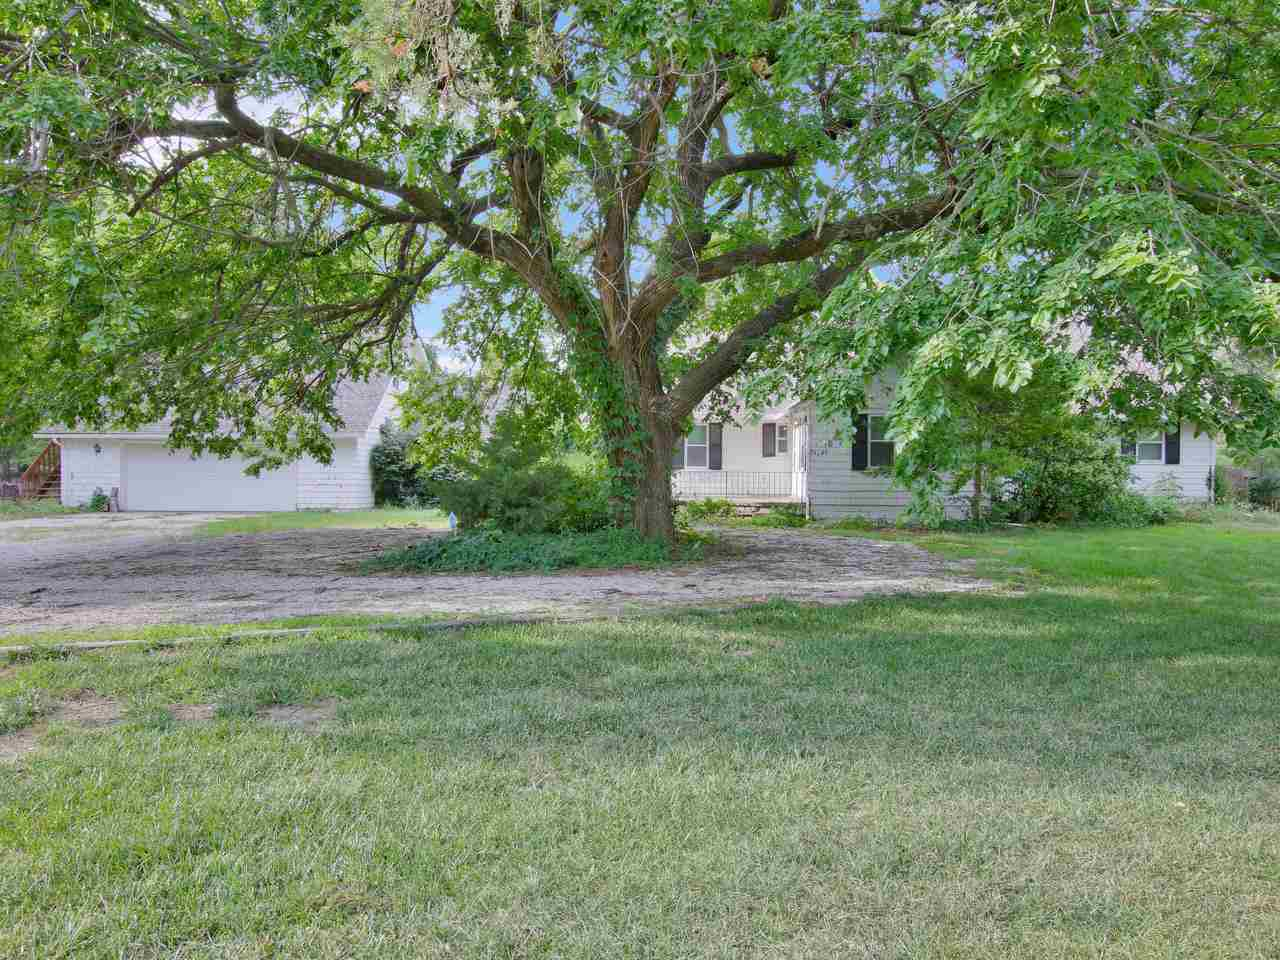 Spacious home on a 1/2 acre lot that is ready for your personal touches! This home is full of potent